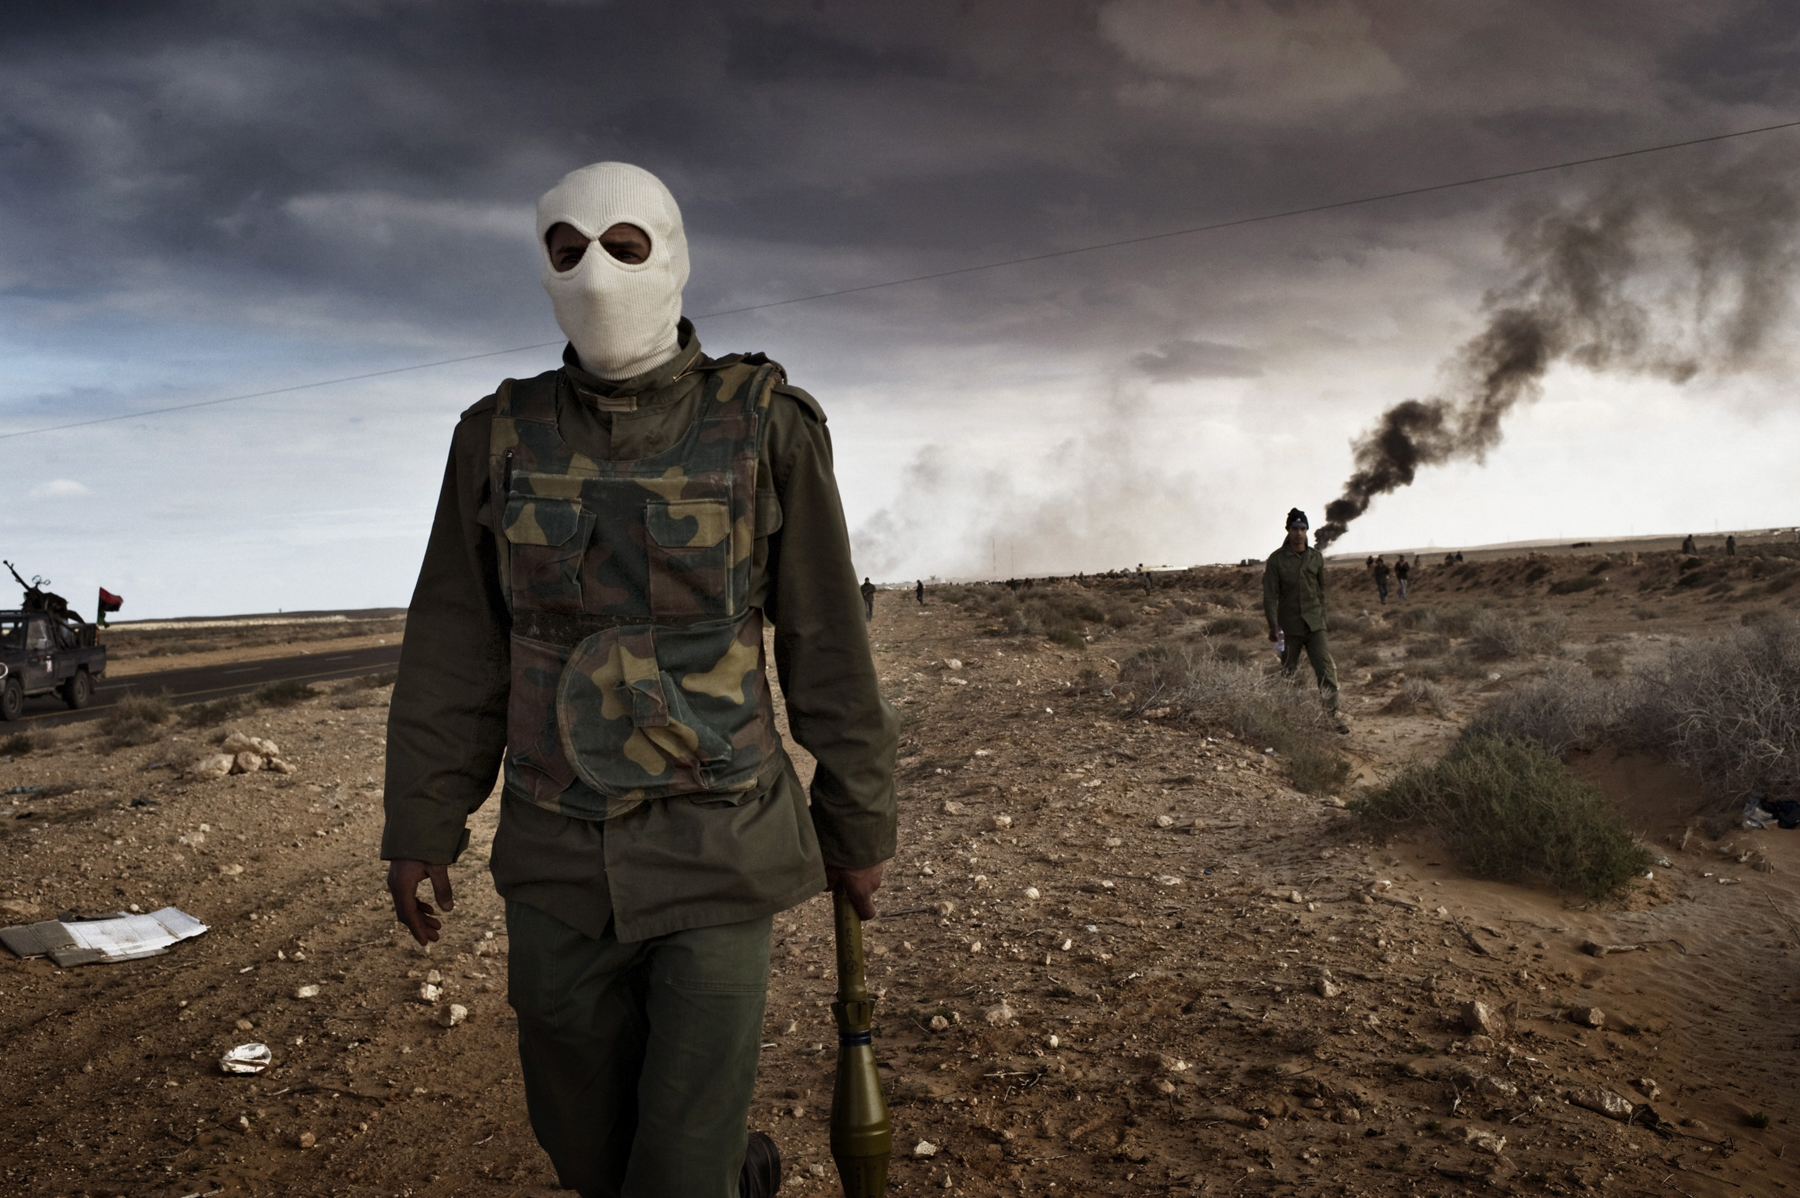 RAS LANUF, LIBYA - MARCH 09: Libyan rebels advance during a battle with government troops as an oil facility burns